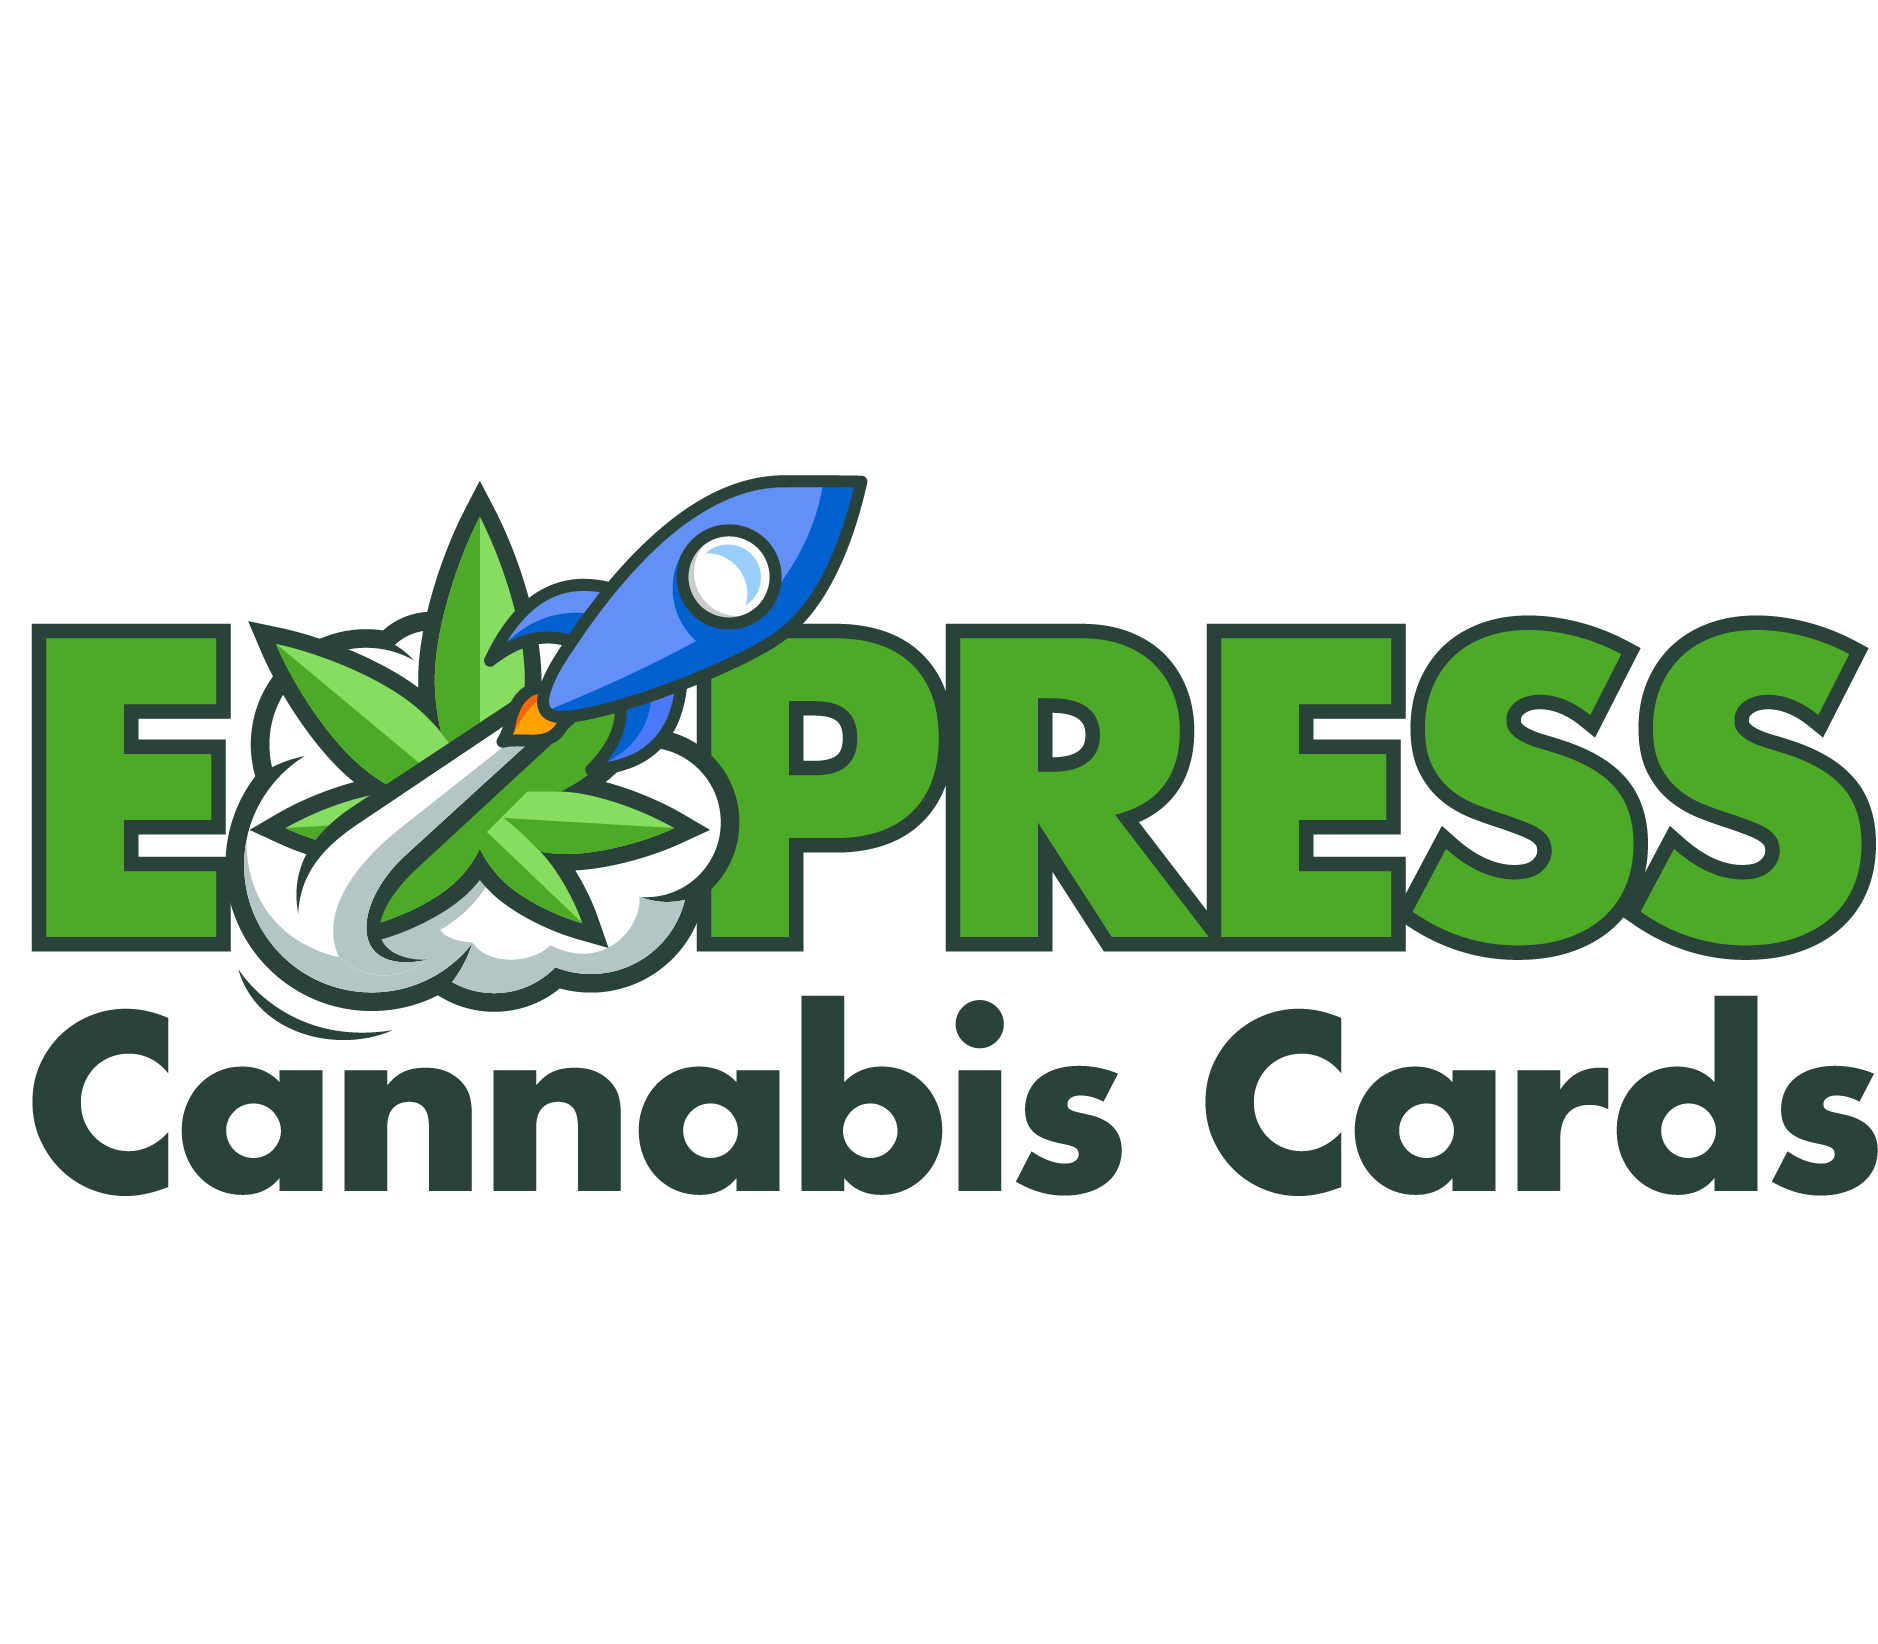 Express Cannabis Cards